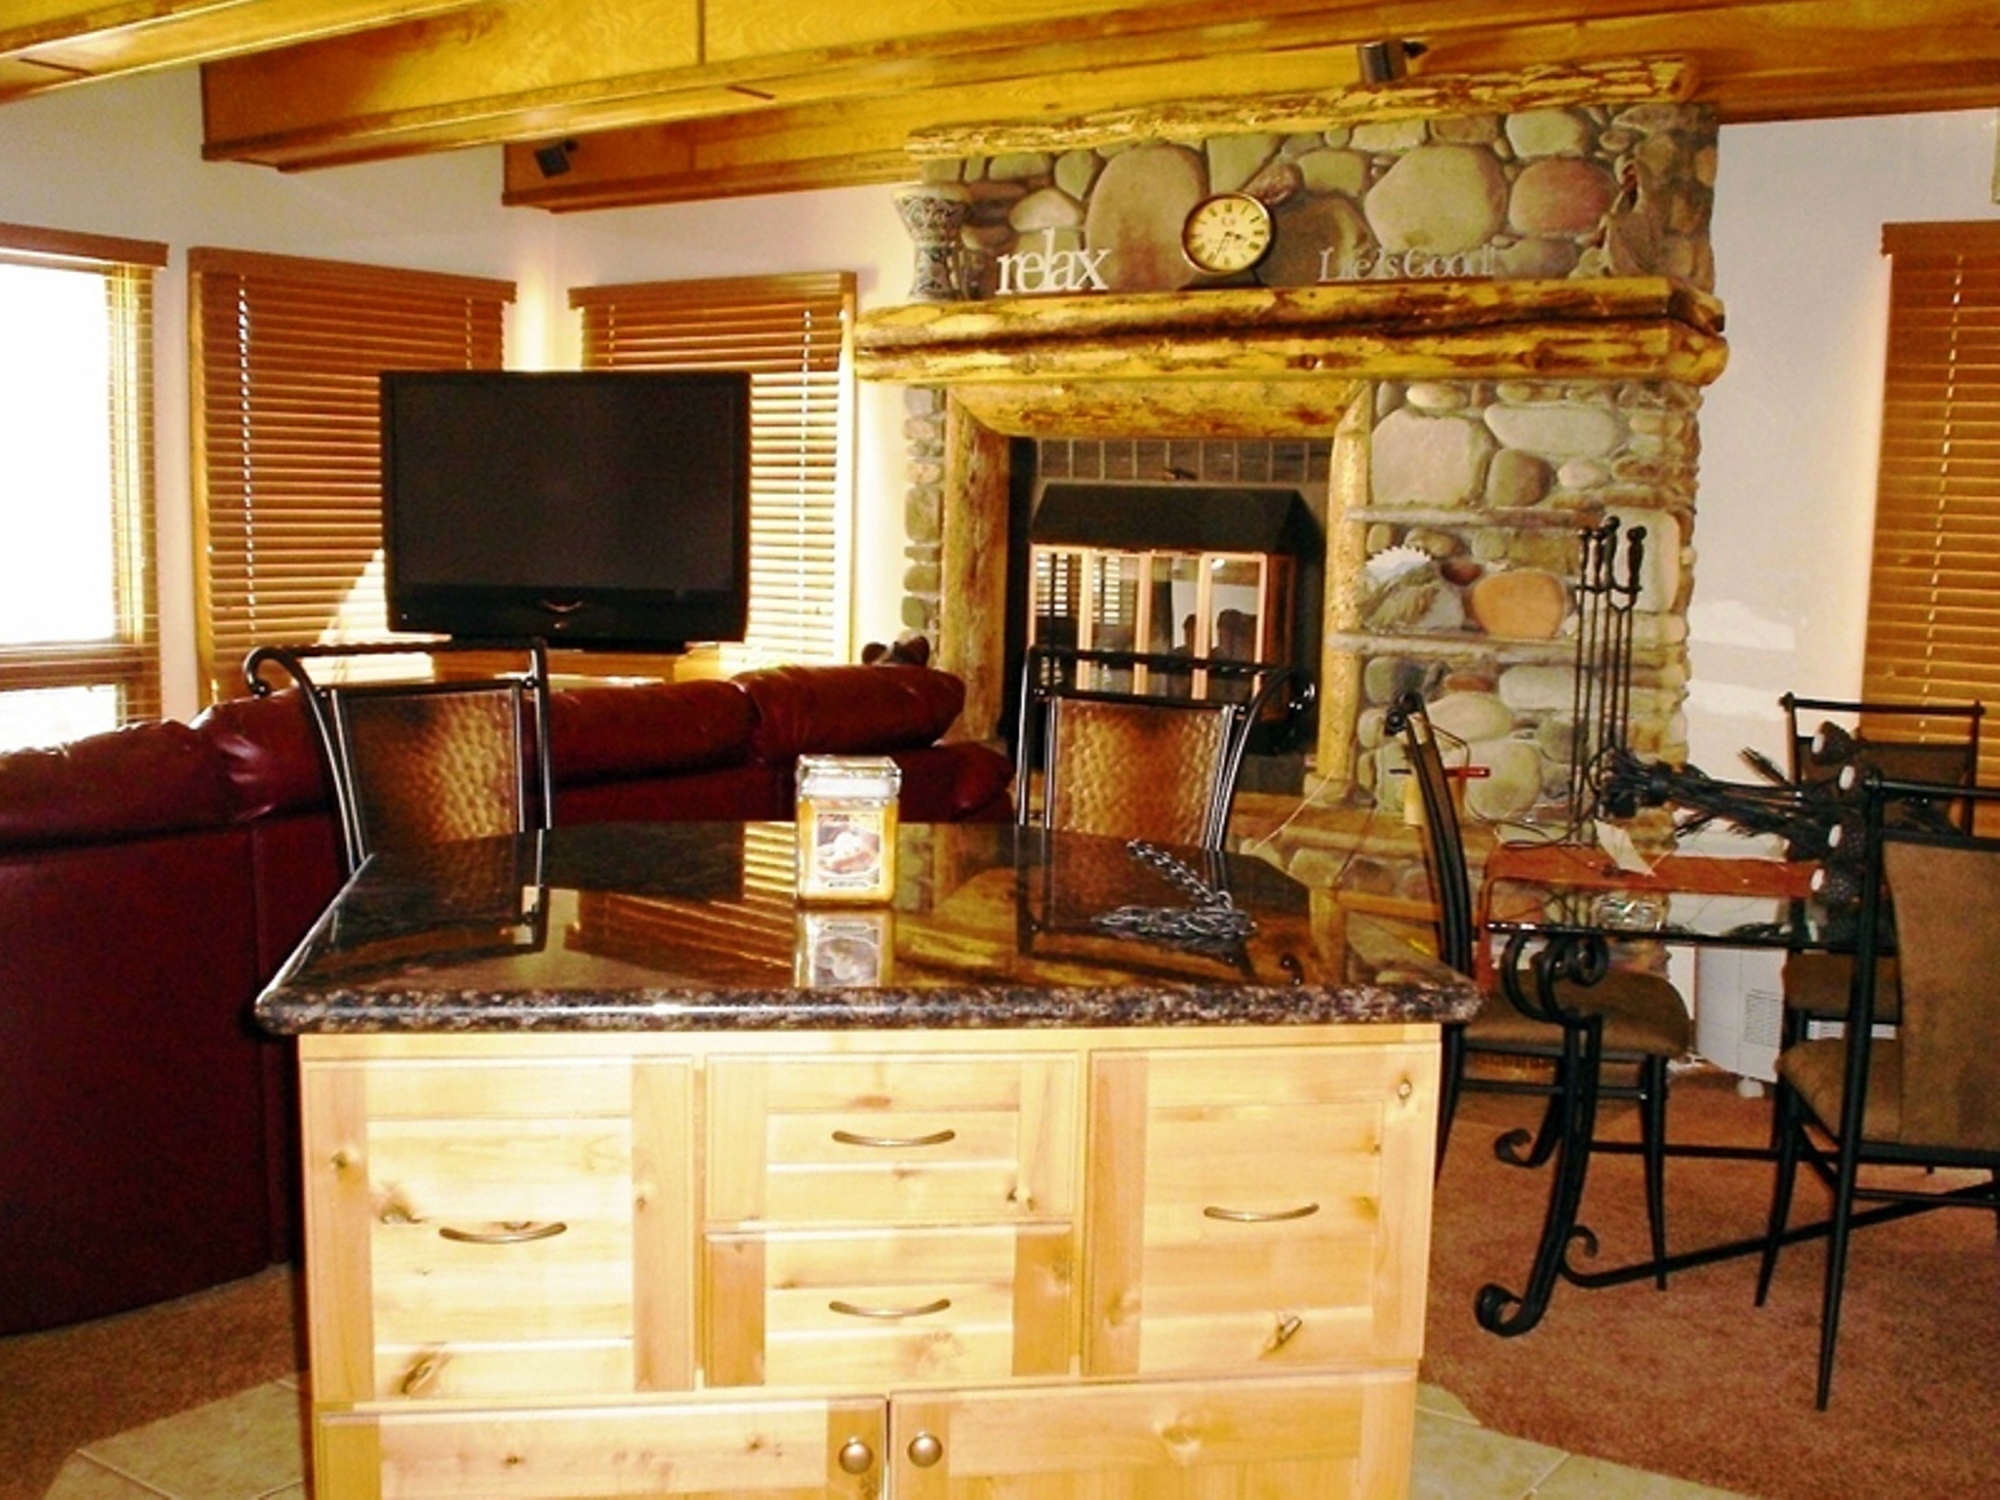 Condominium for Sale at Elegant Condominium 11 Snowmass Rd Mount Crested Butte, Colorado, 81225 United States